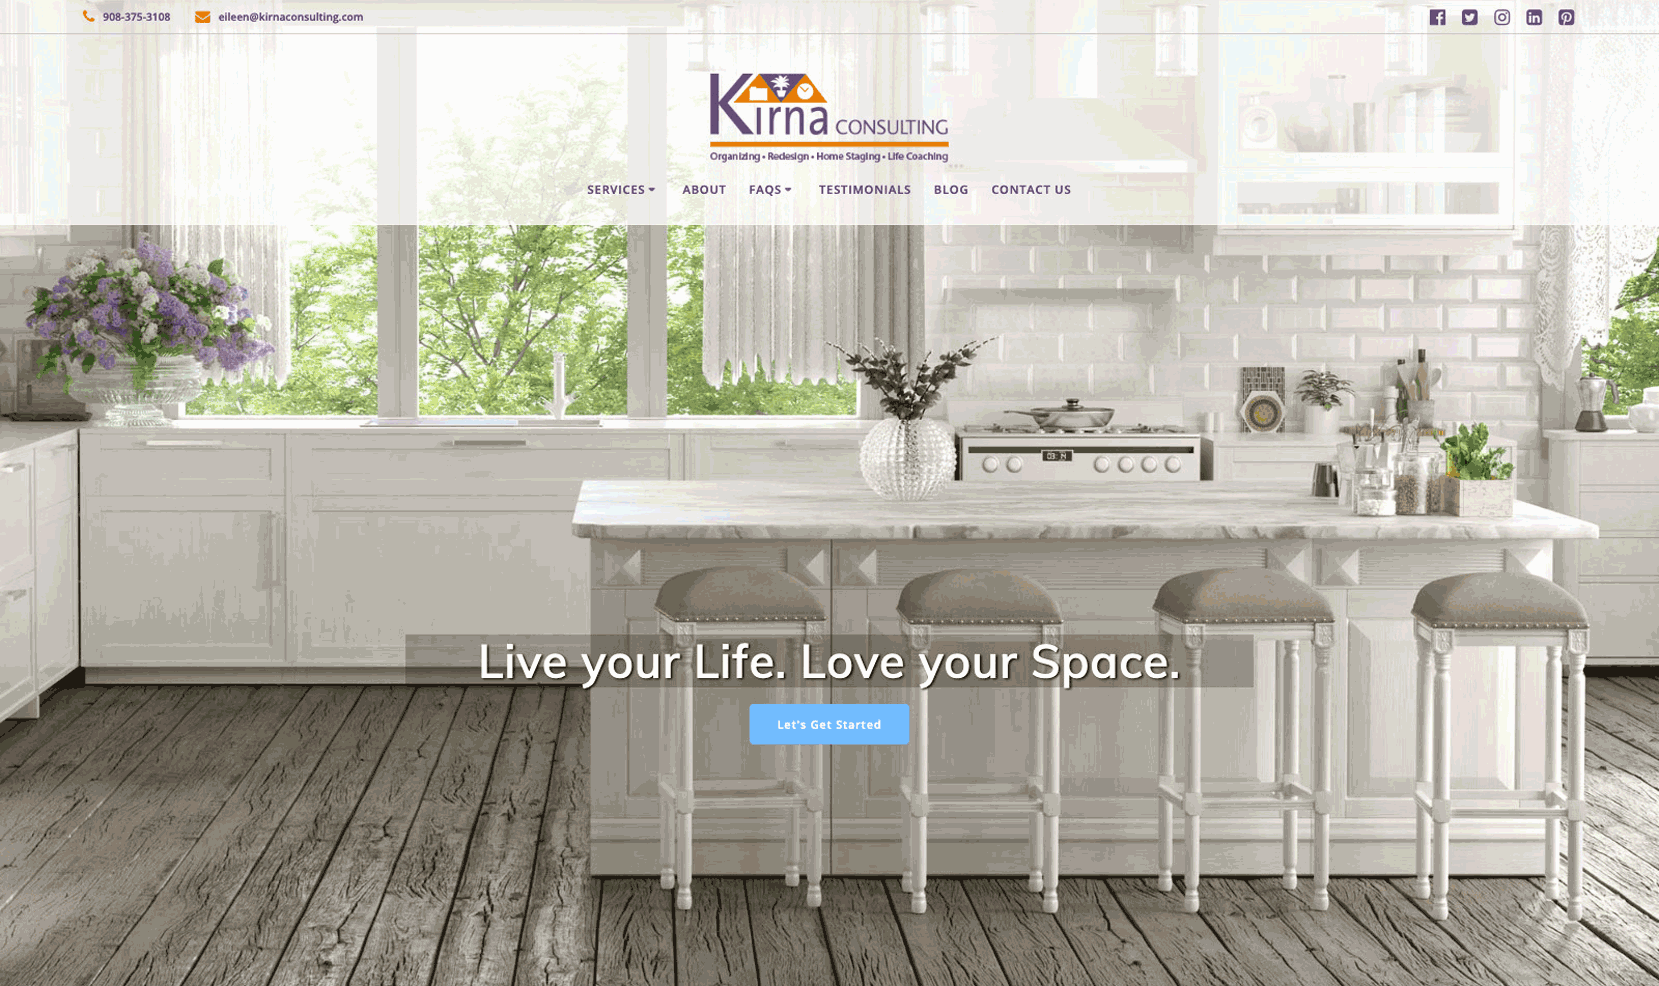 Kirna Consulting